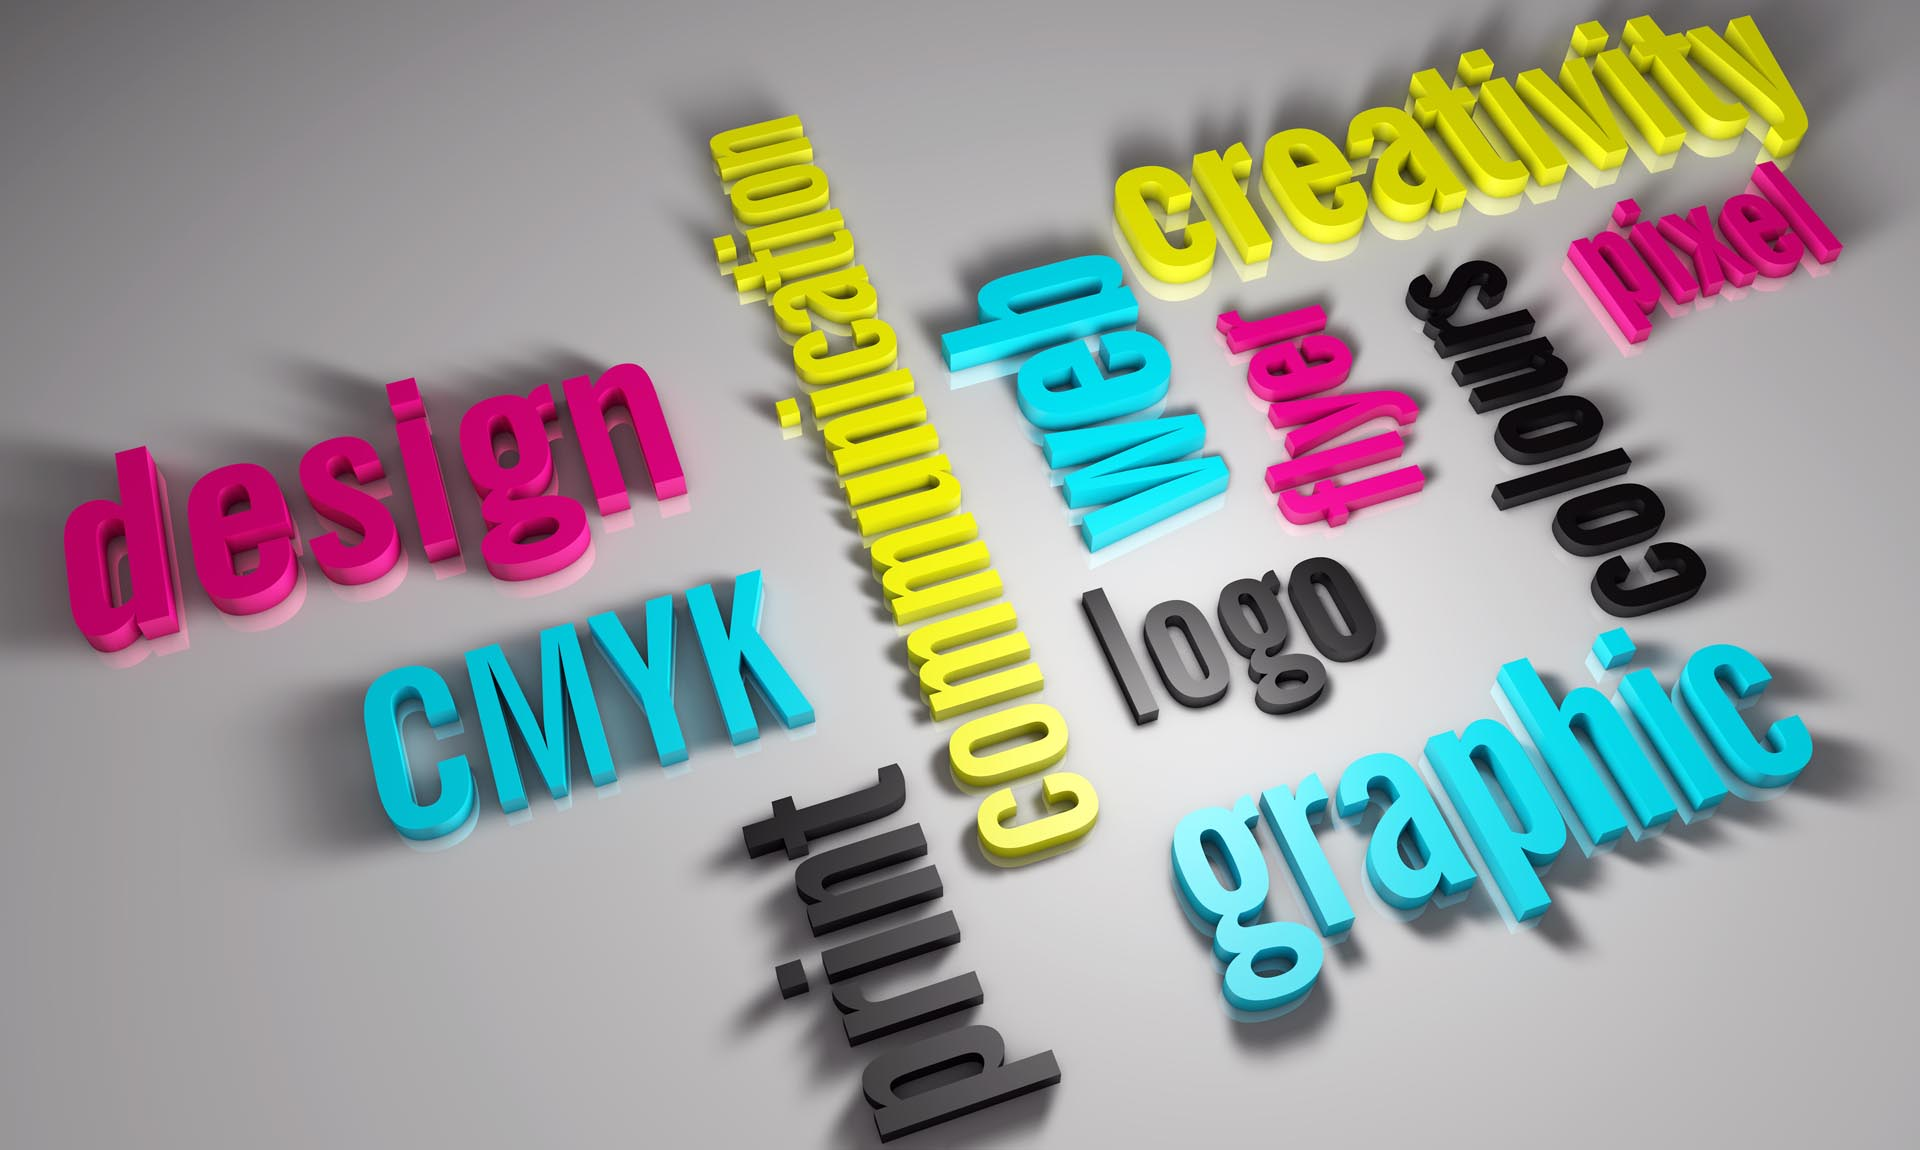 You Could Be a Successful Graphic Designer